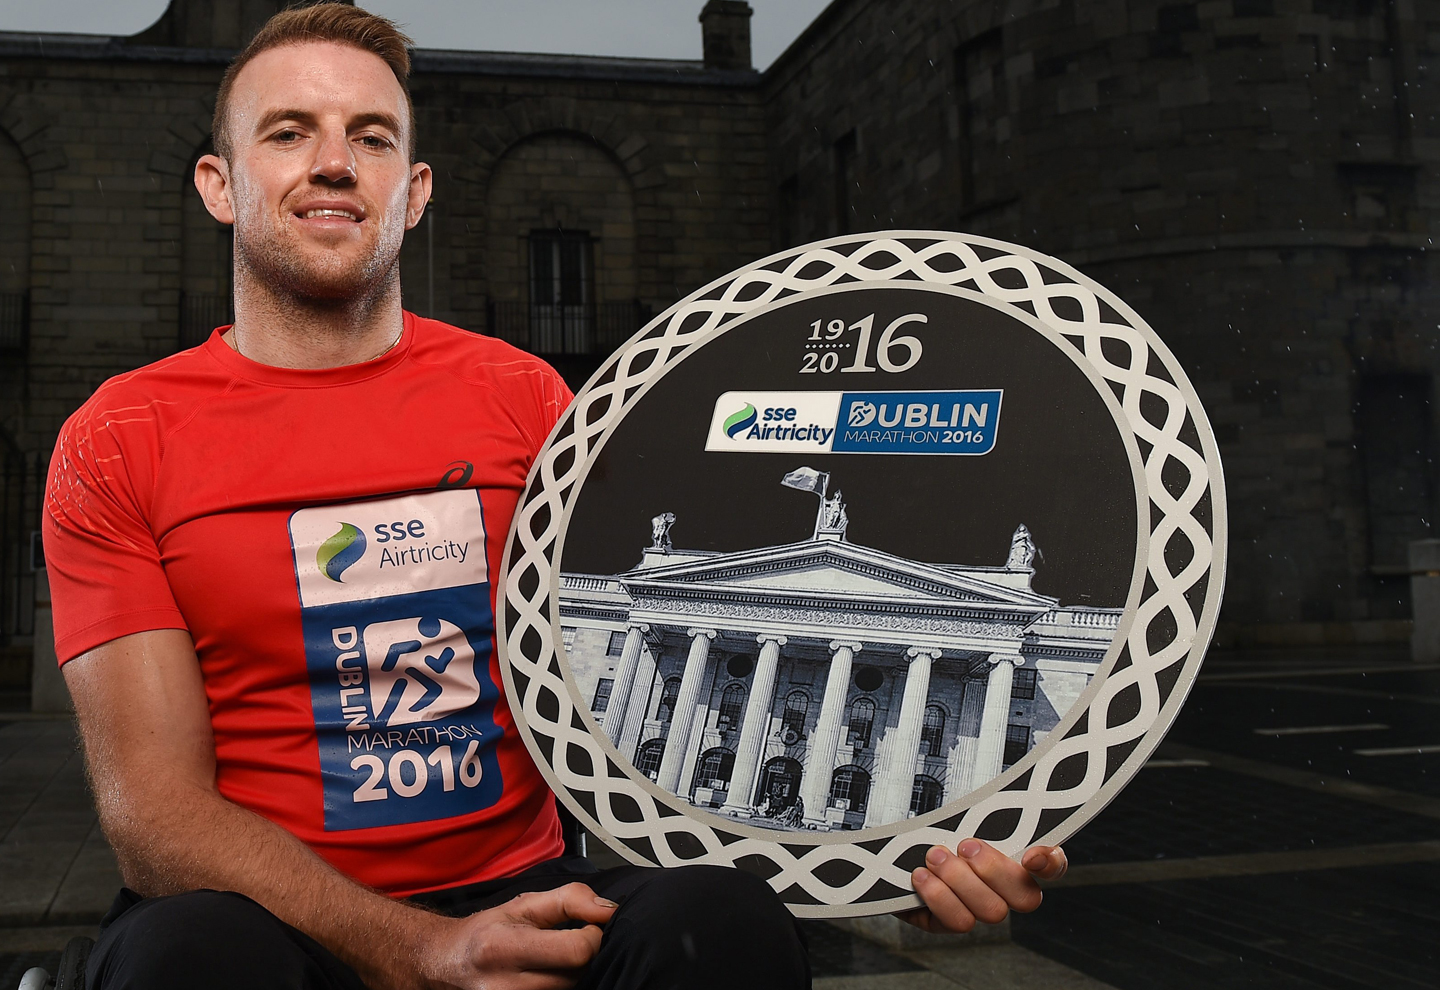 SSE Airtricity Dublin Marathon becomes Fourth Largest Marathon in Europe